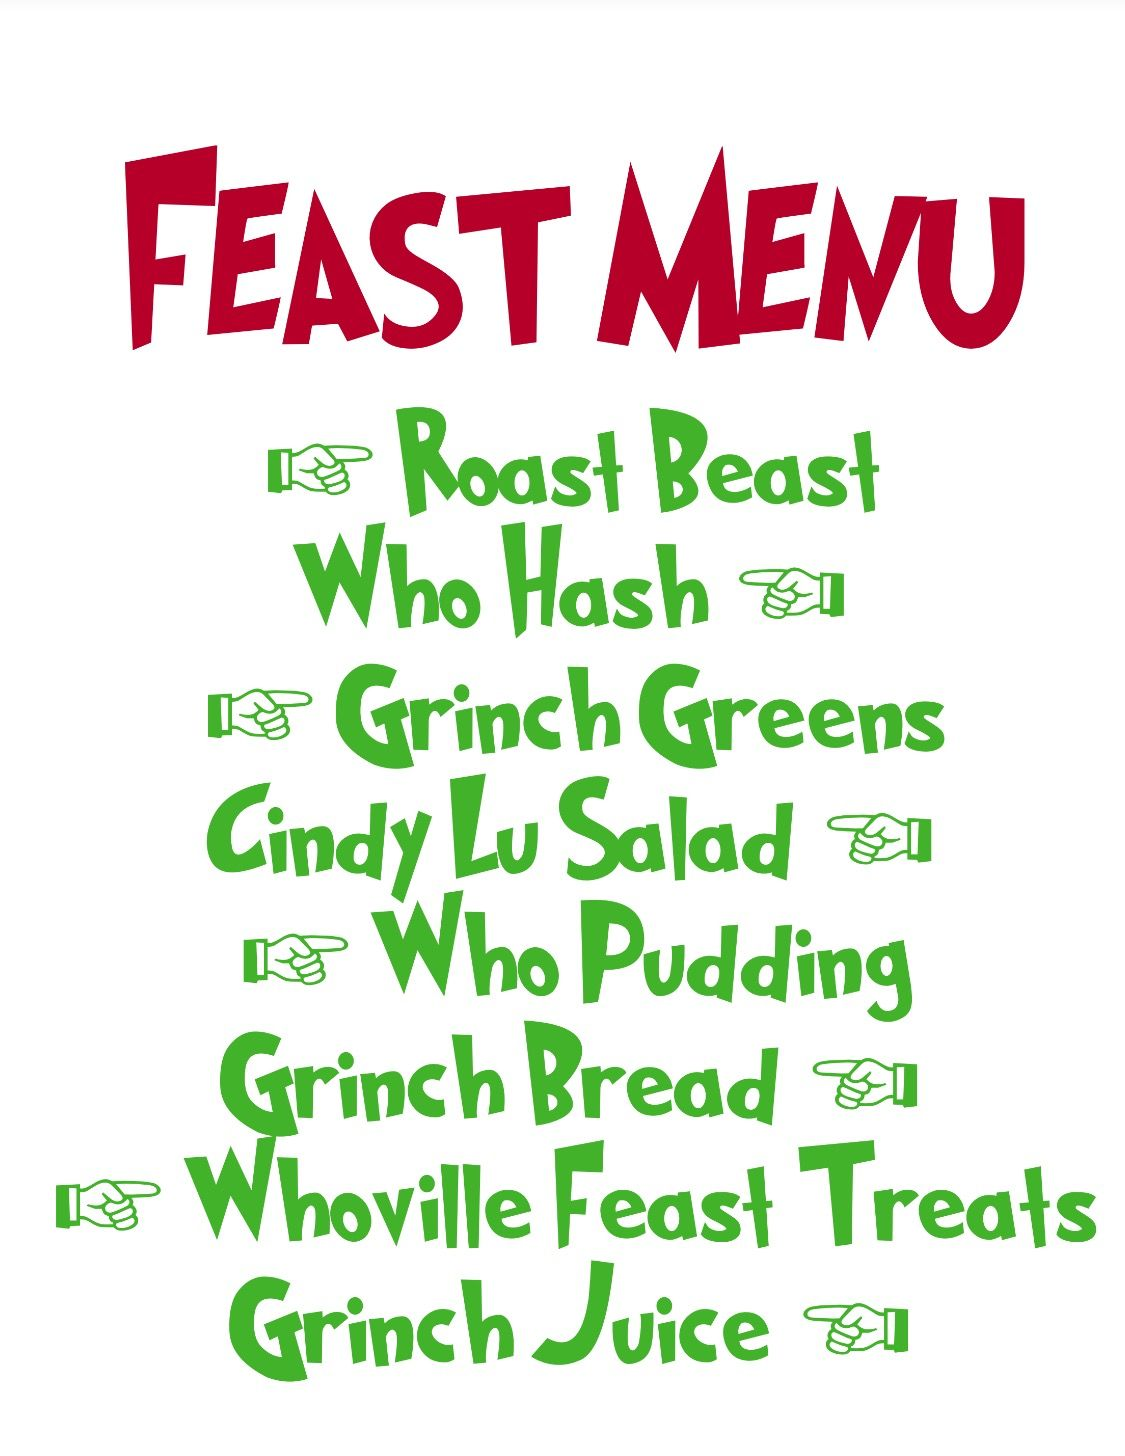 family holiday photo ideas pinterest - Dr Seuss How the Grinch stole Christmas Lunch Dinner Menu